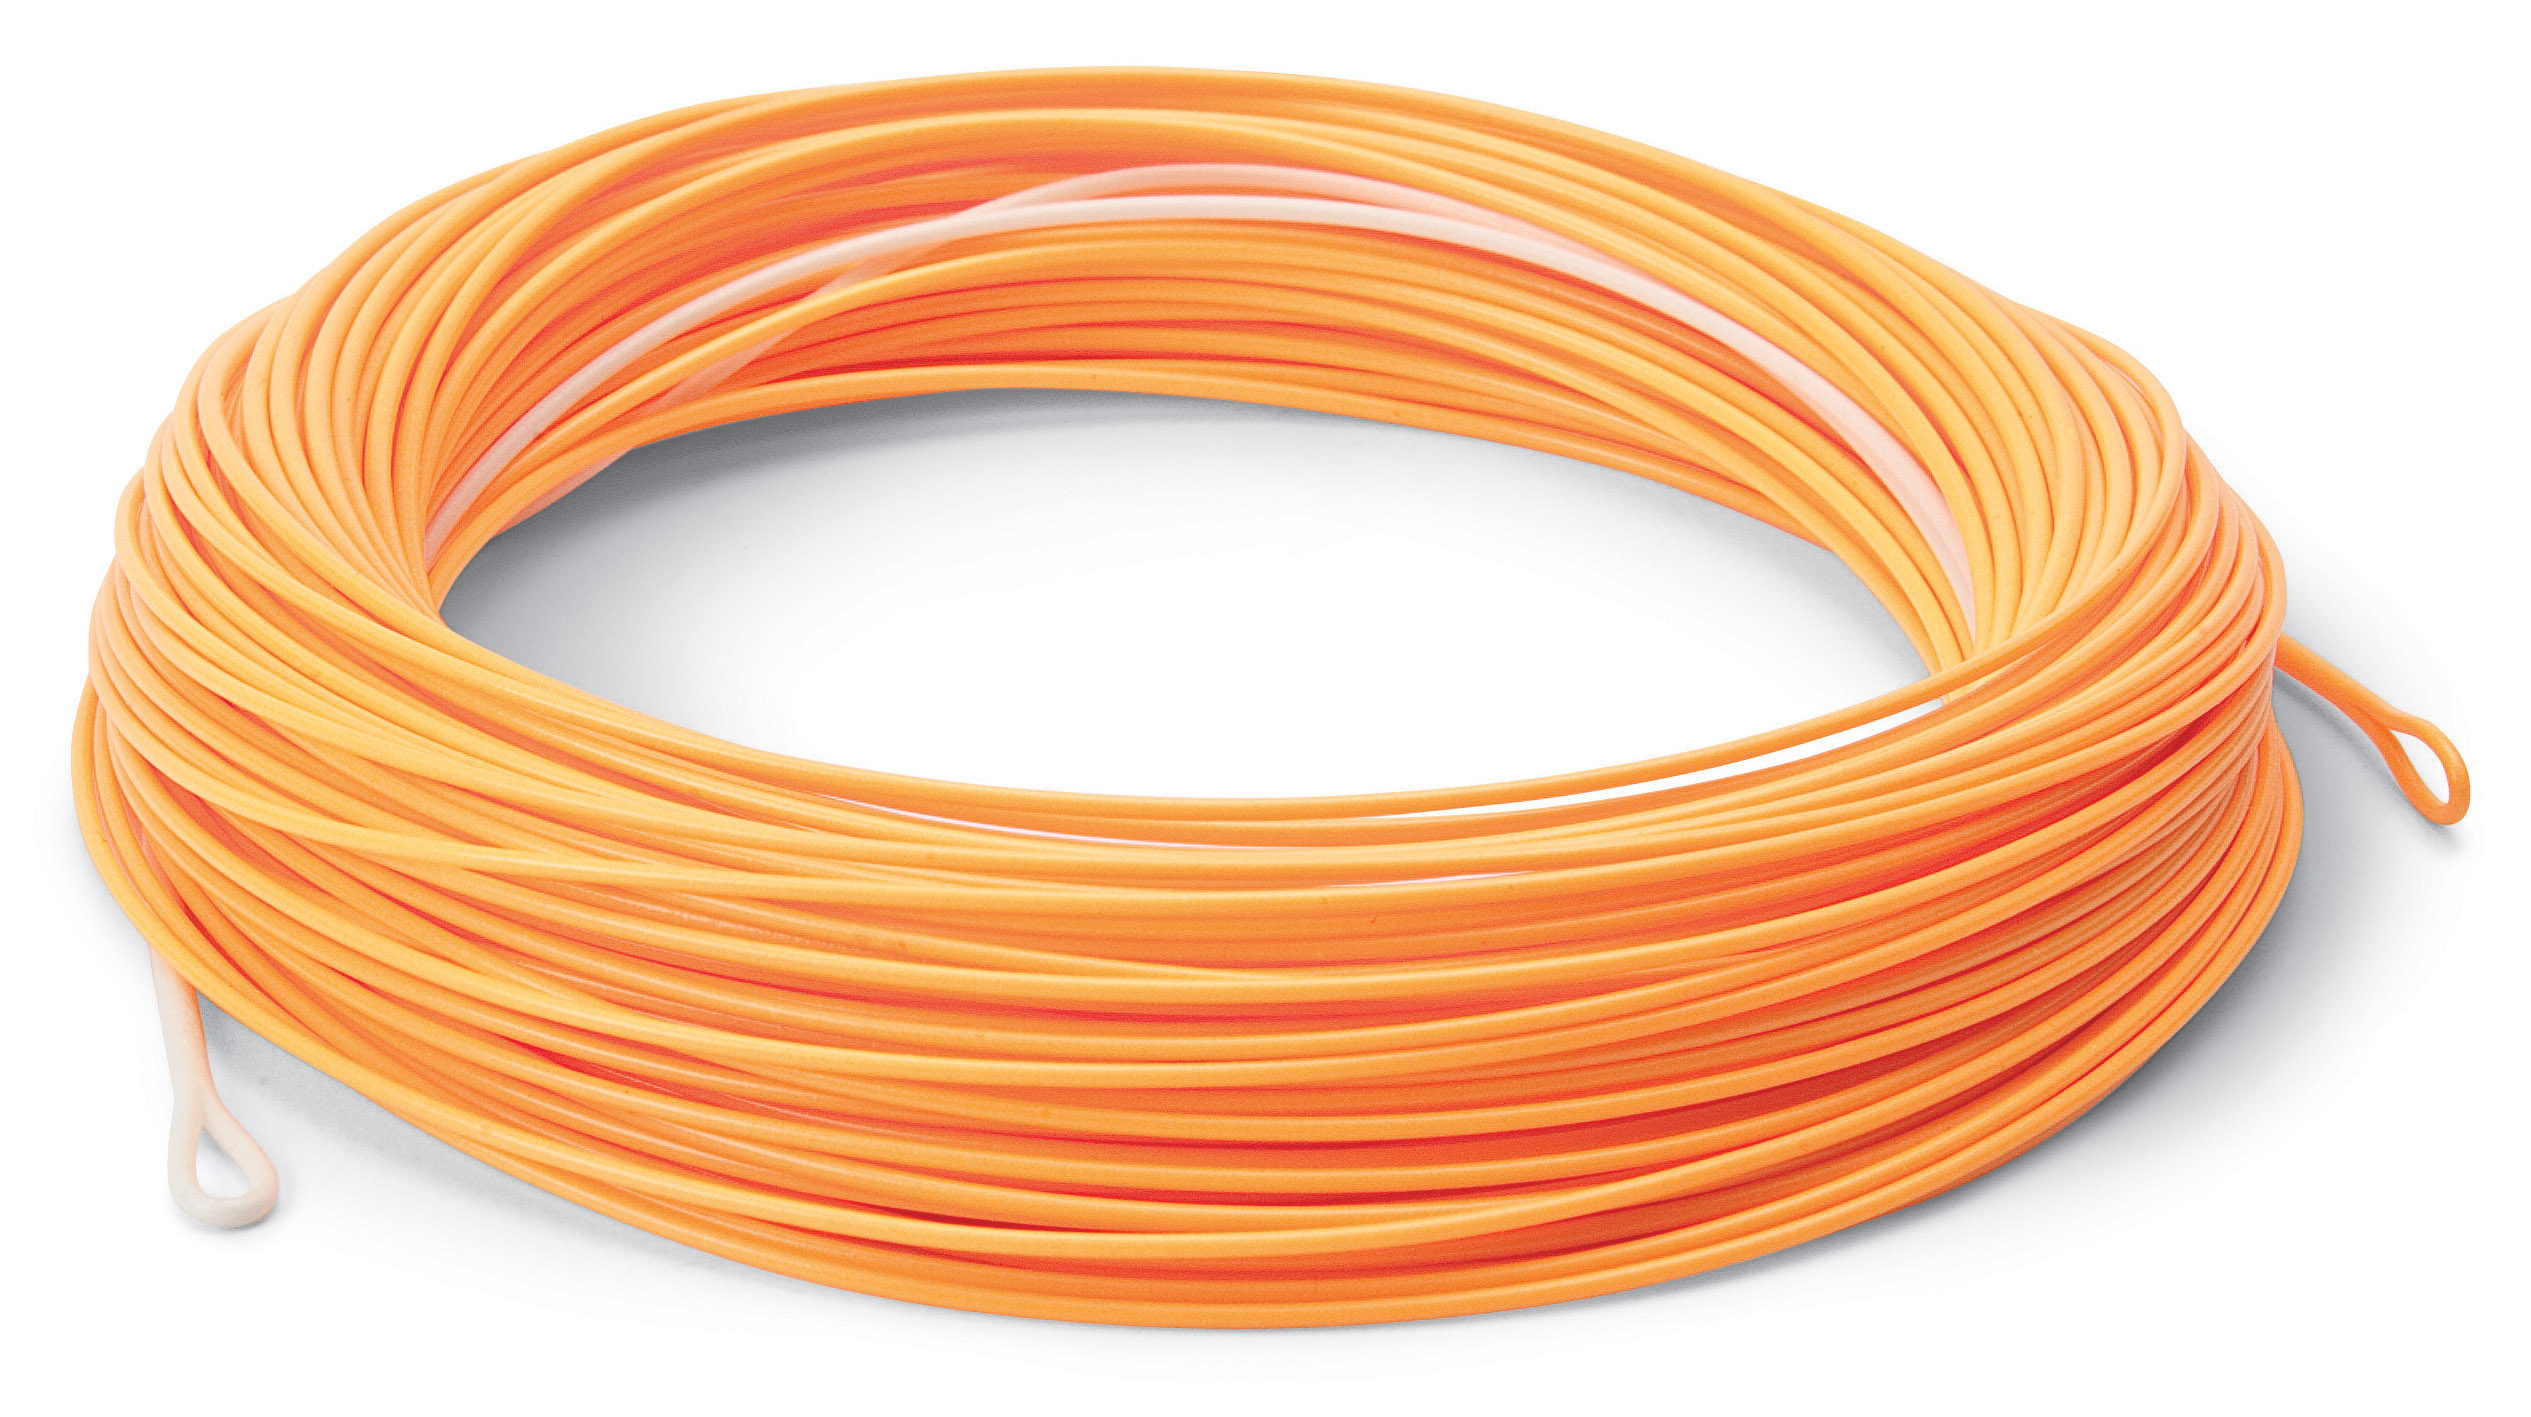 Cortland precision trout boss dyna tip 100 39 fly lines for Orange fishing line